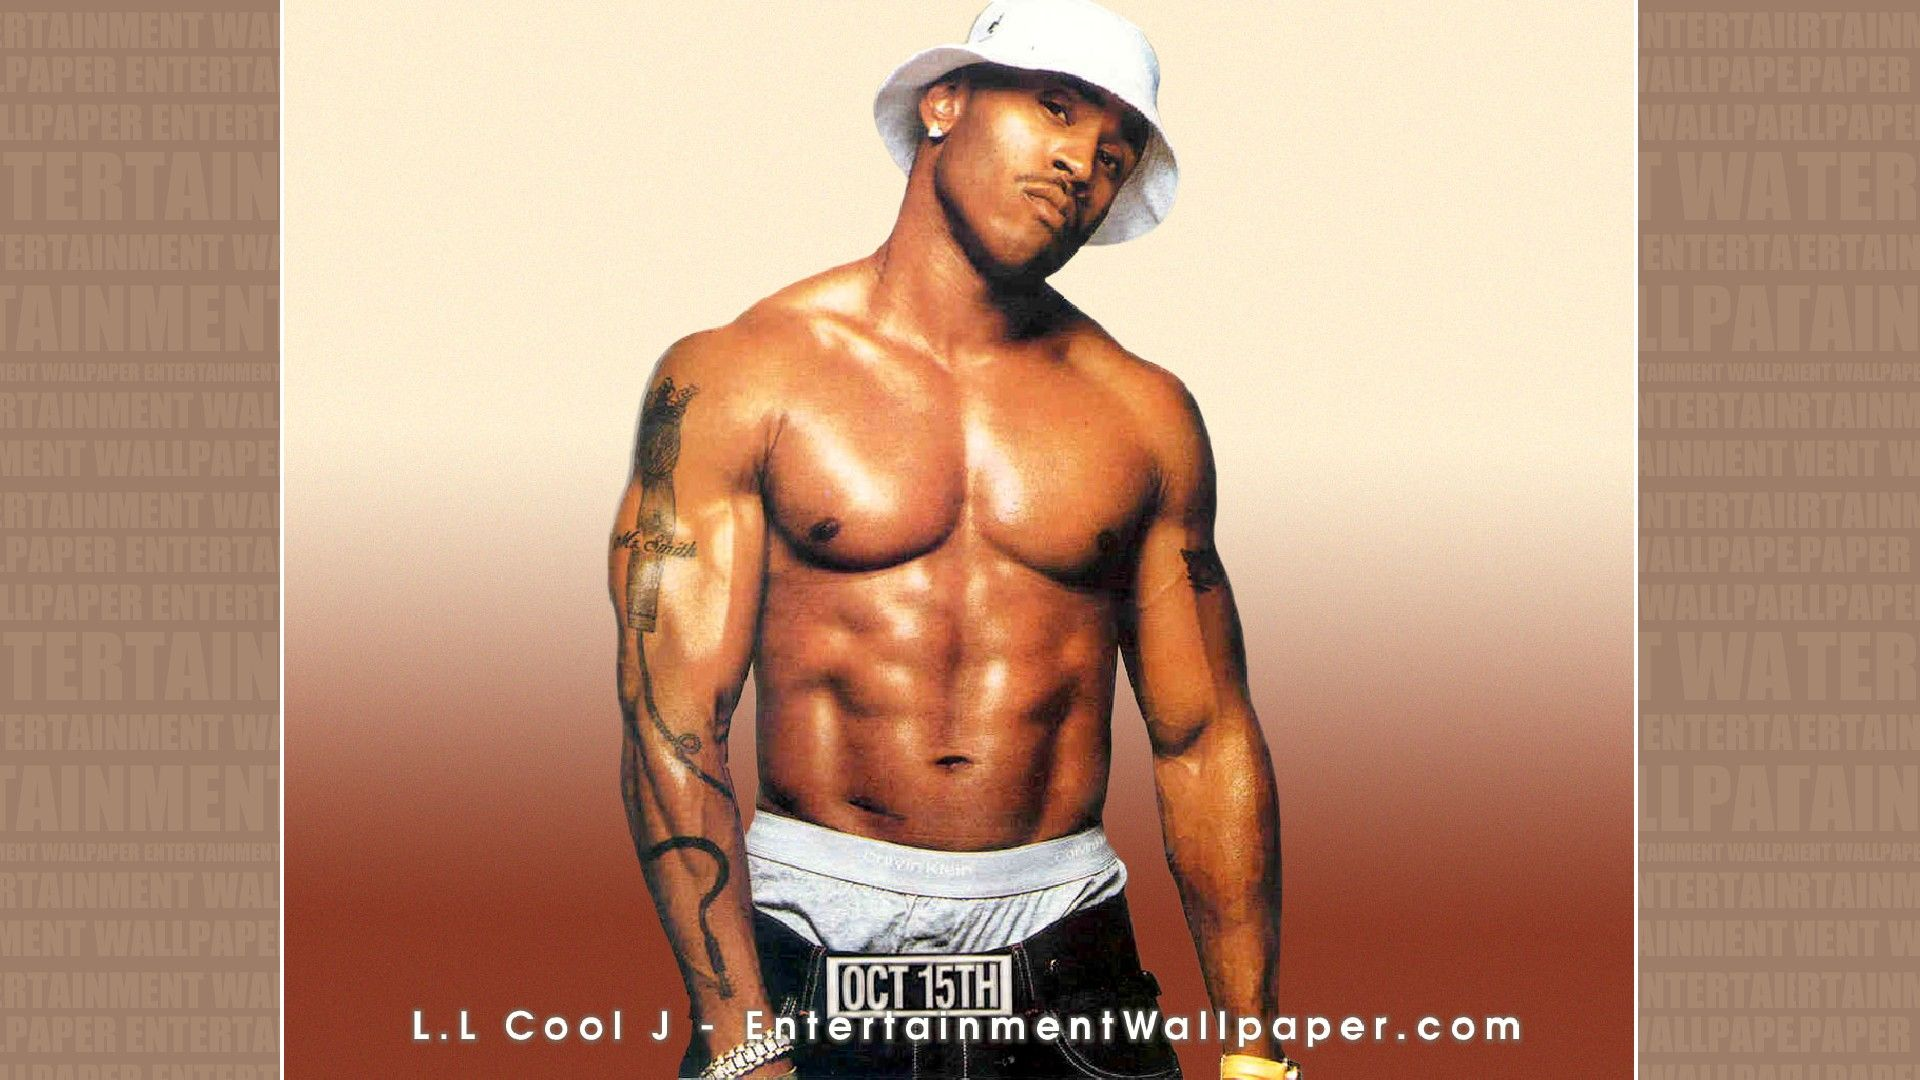 Amazon.com : Rapper and Music Star LL Cool J Shirtless